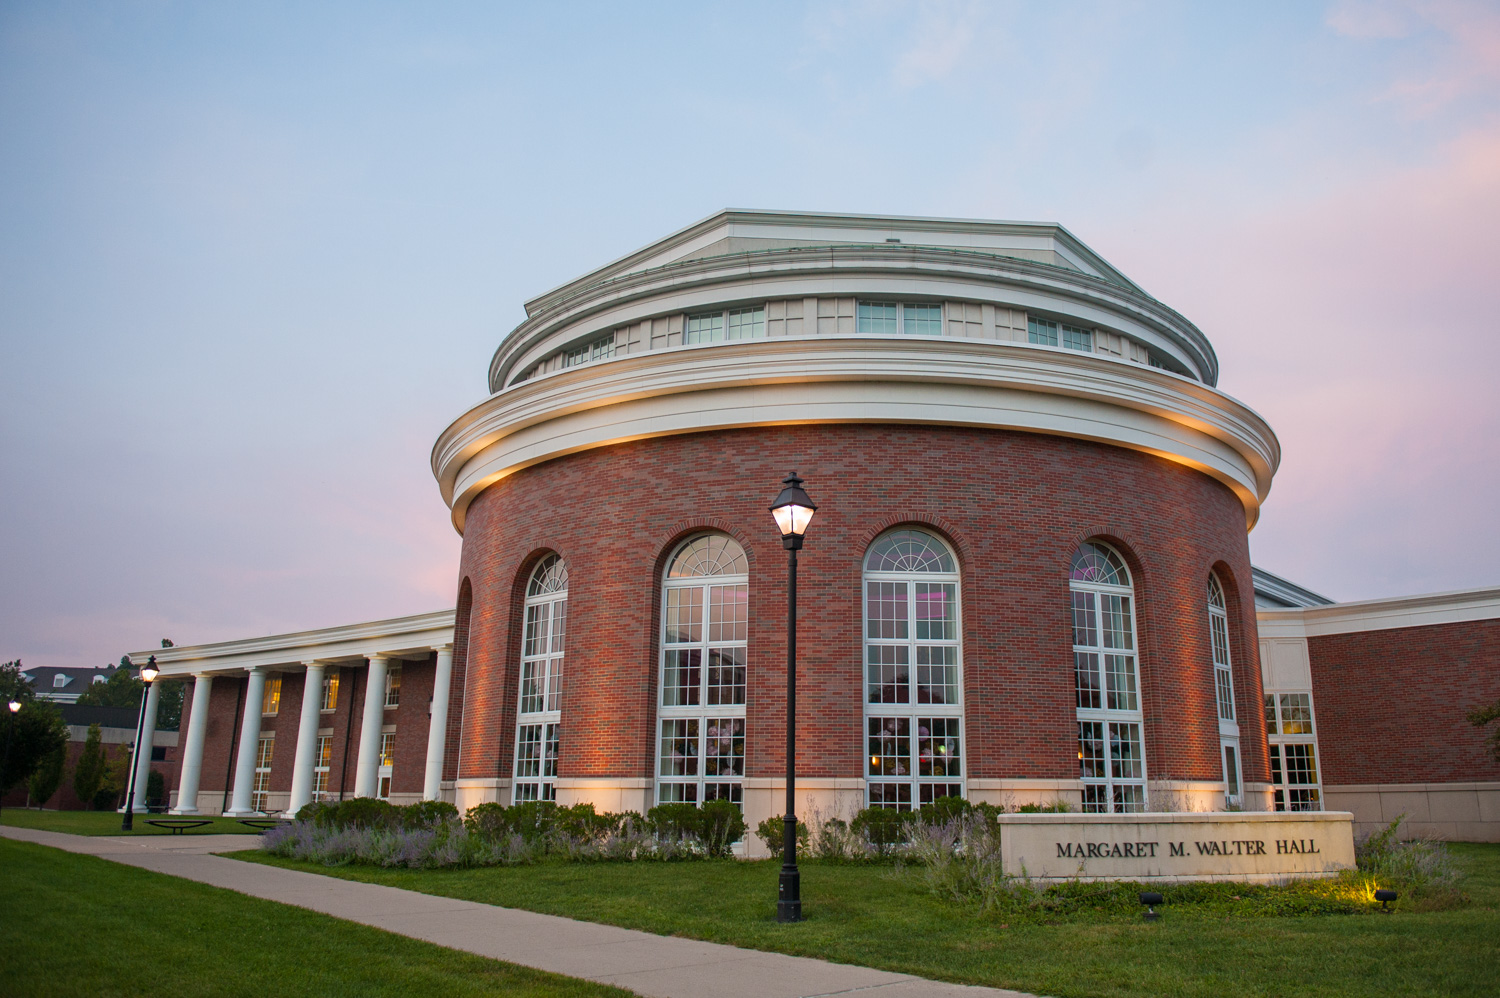 Walter Hall at Ohio University in Athens, OH.